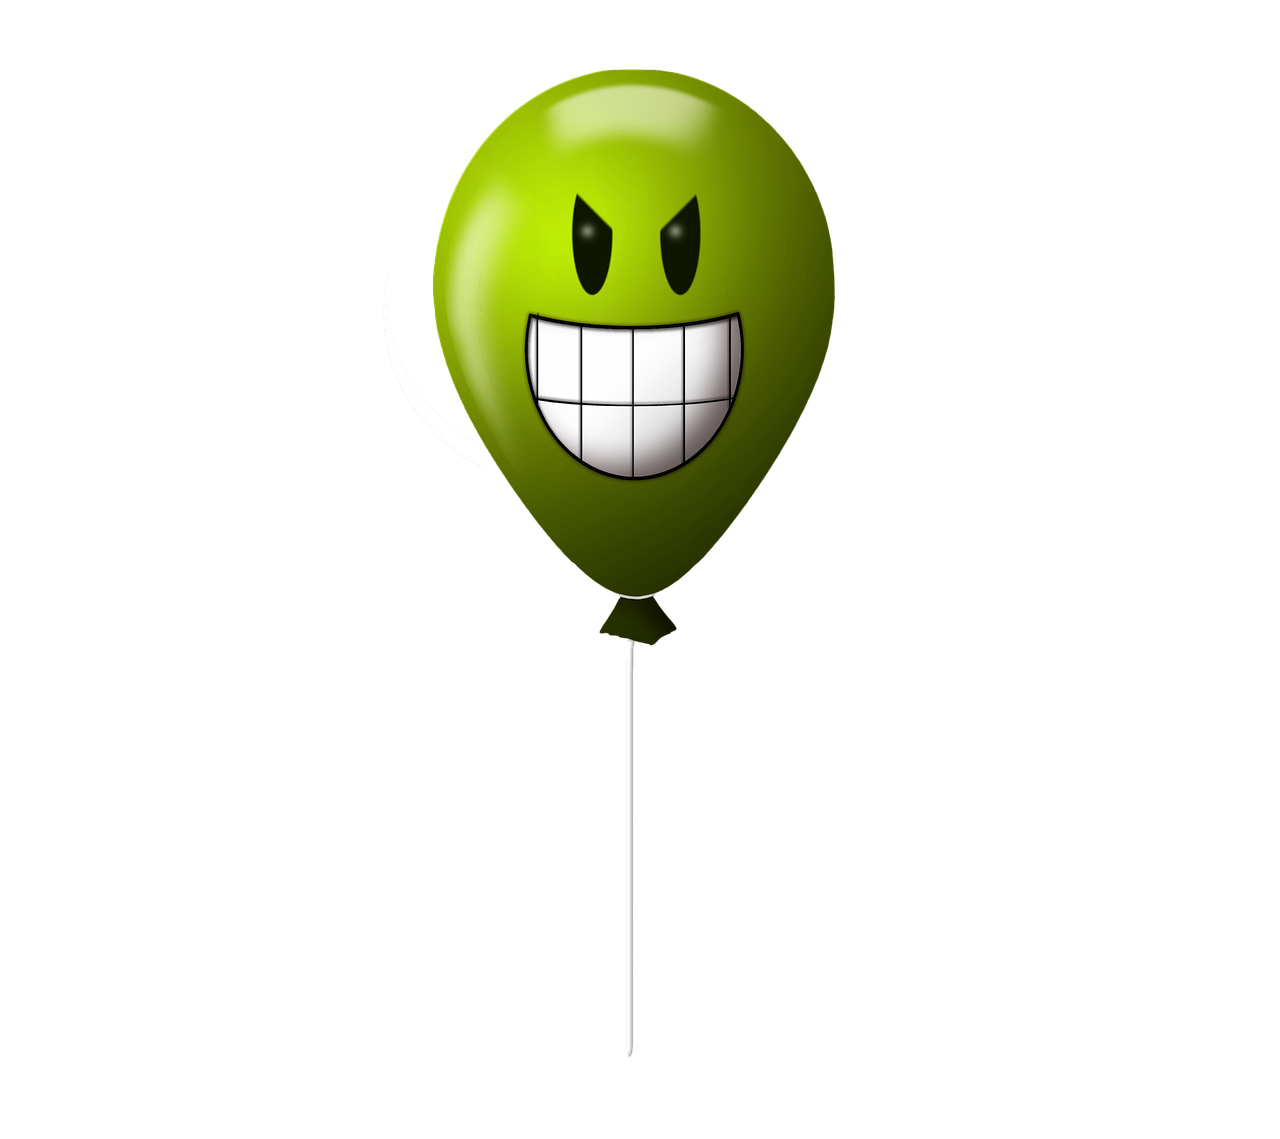 balloon emoticon evil free photo